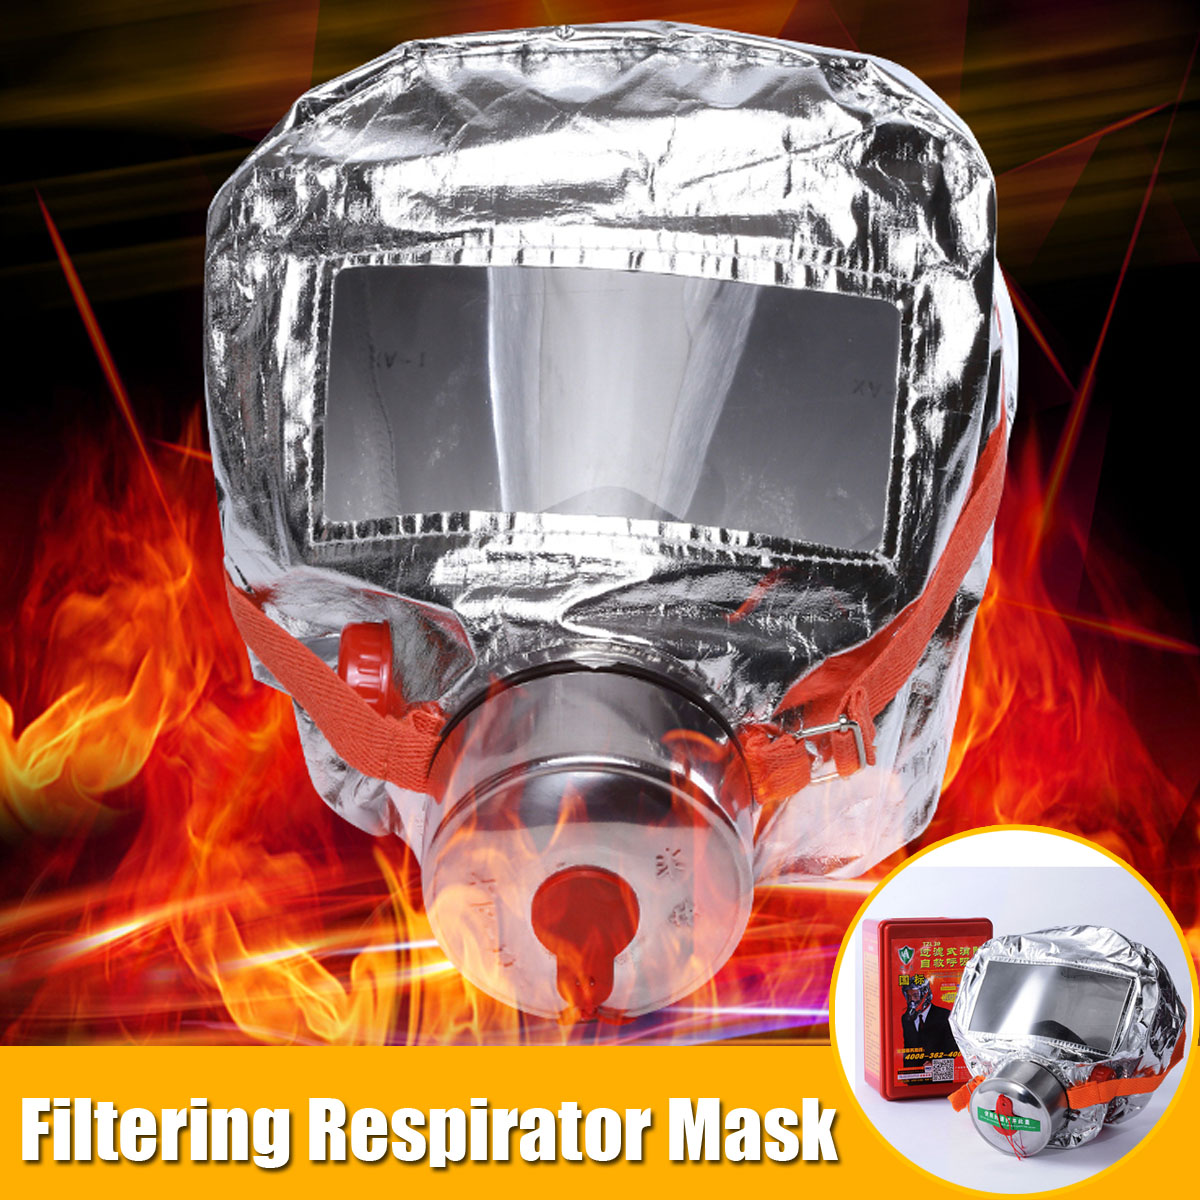 30 Minutes Fires Emergency Escape Mask Oxygen Smoke Gas Self-life-saving Smoke Toxic Filter Emergency Escape Respirator Mask